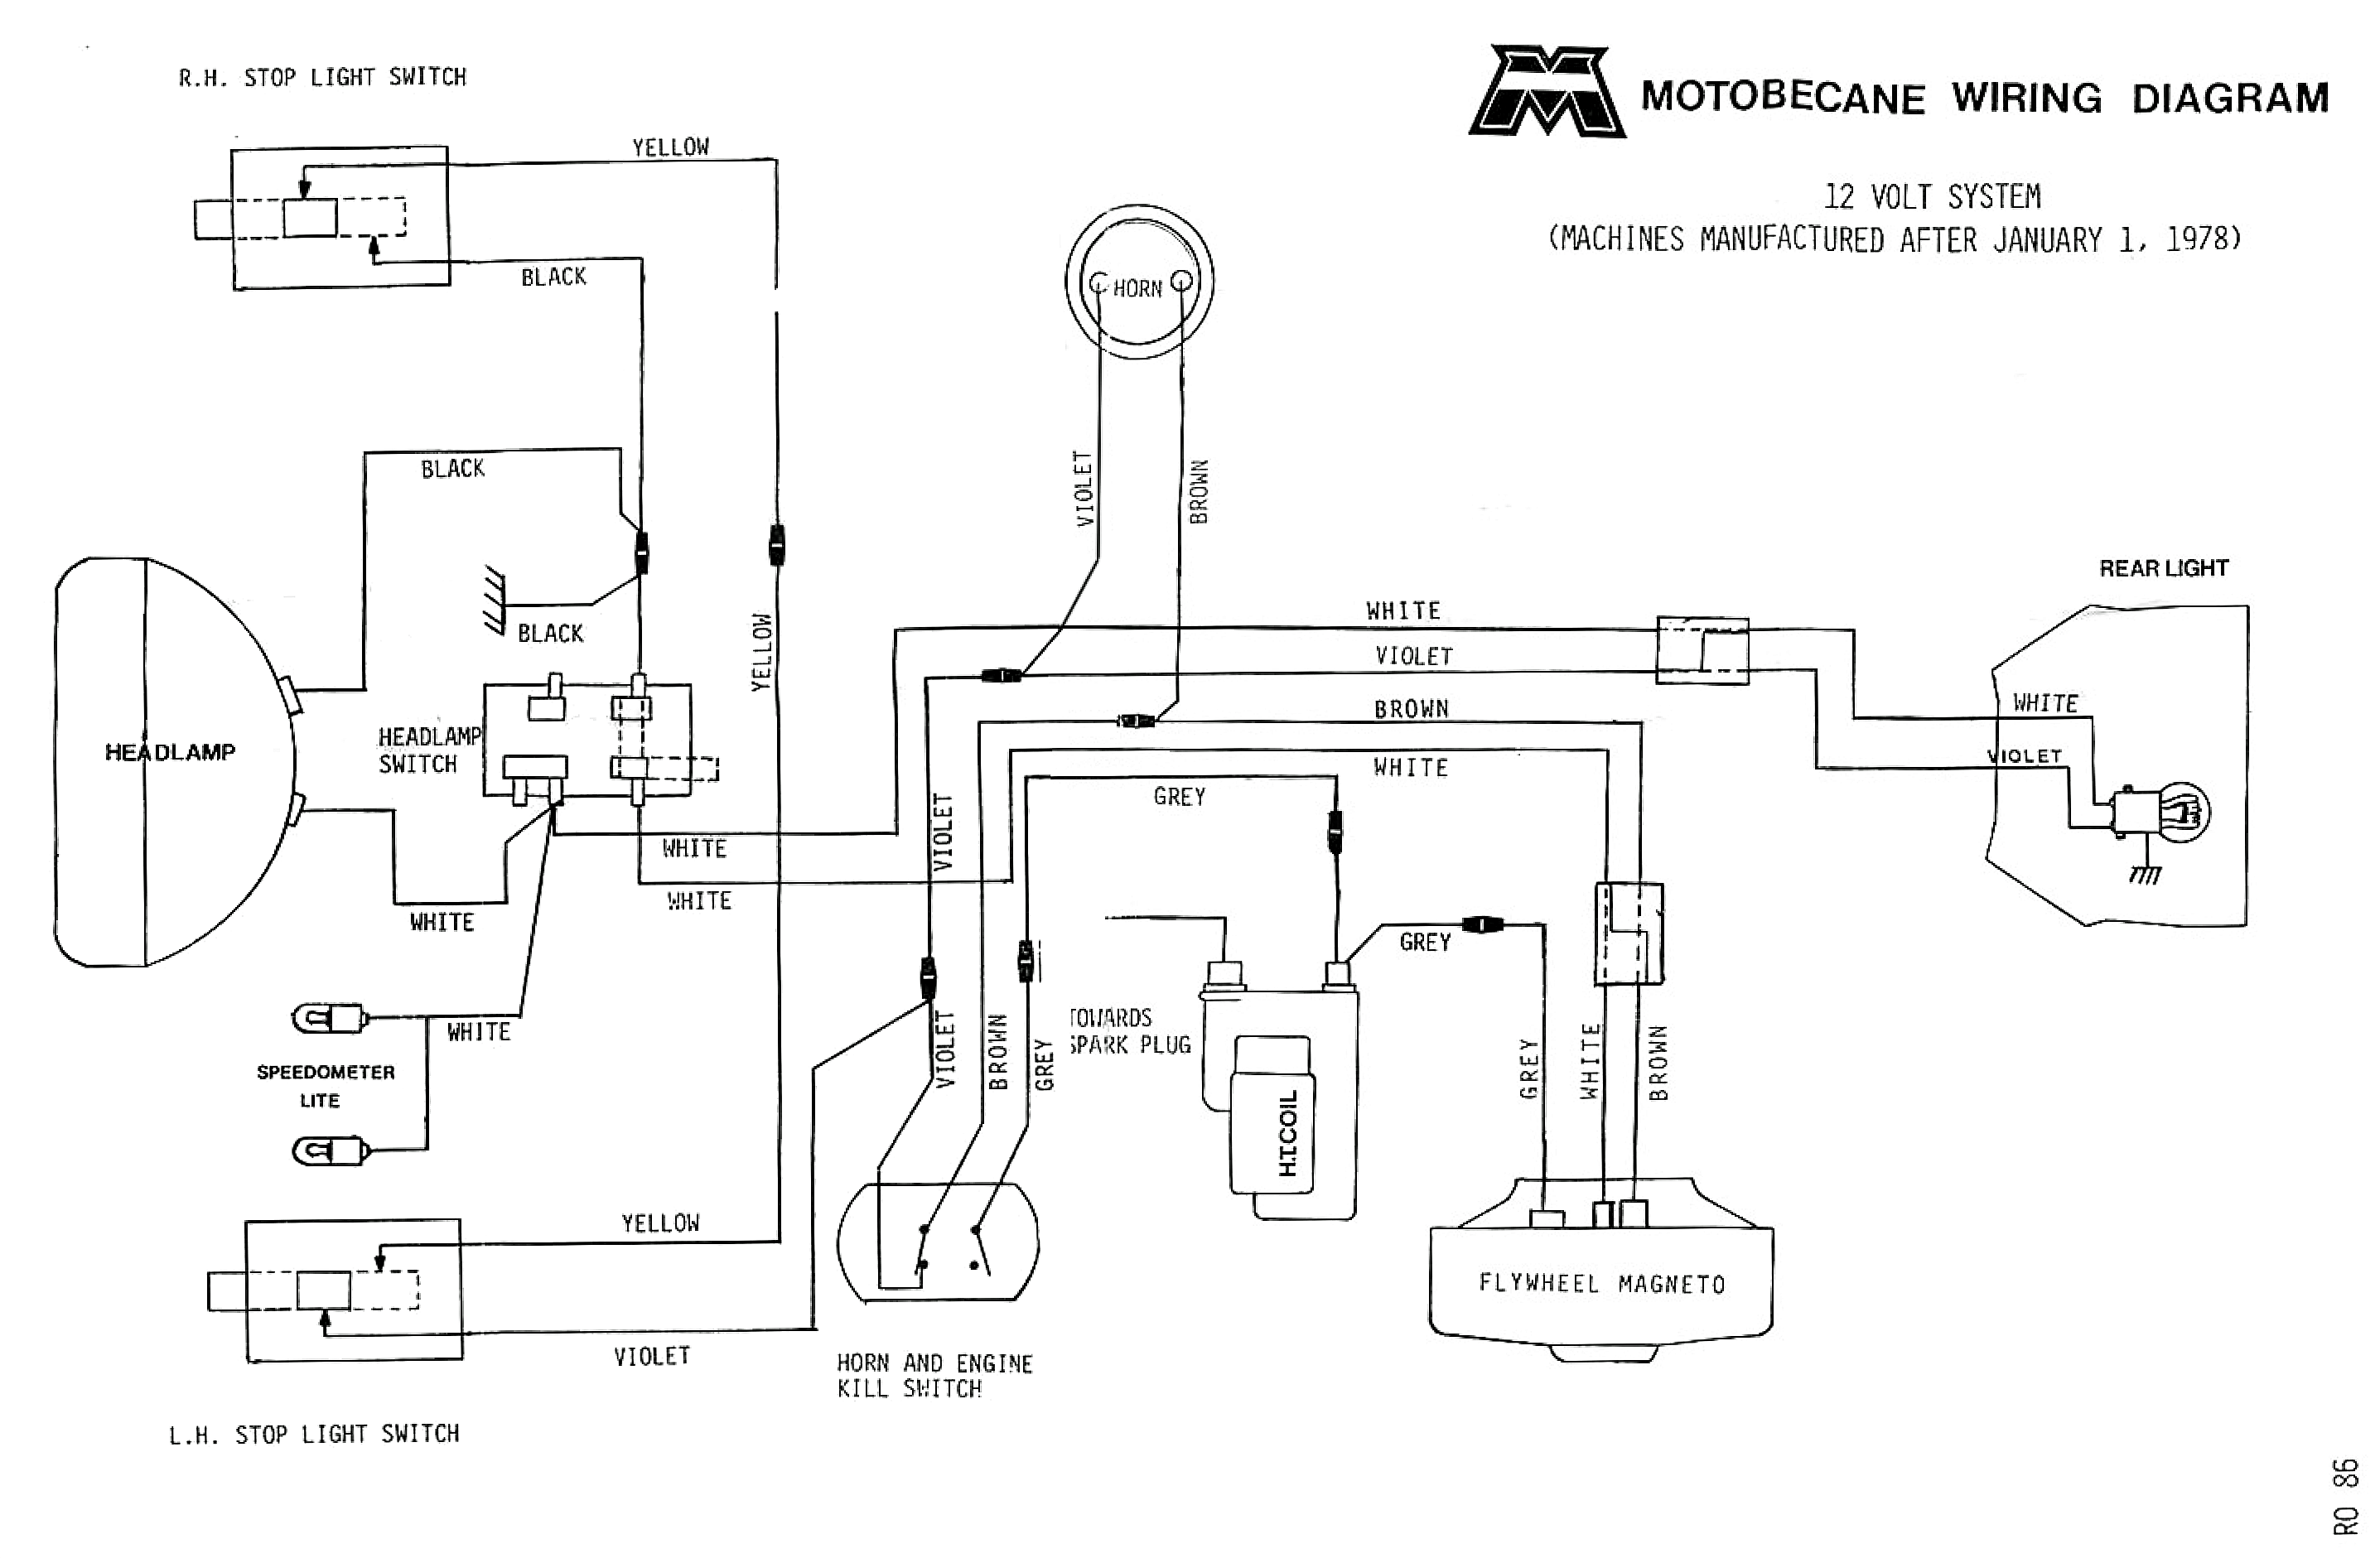 04 international wiring diagram motobecane wiring diagrams moped wiki  motobecane wiring diagrams moped wiki